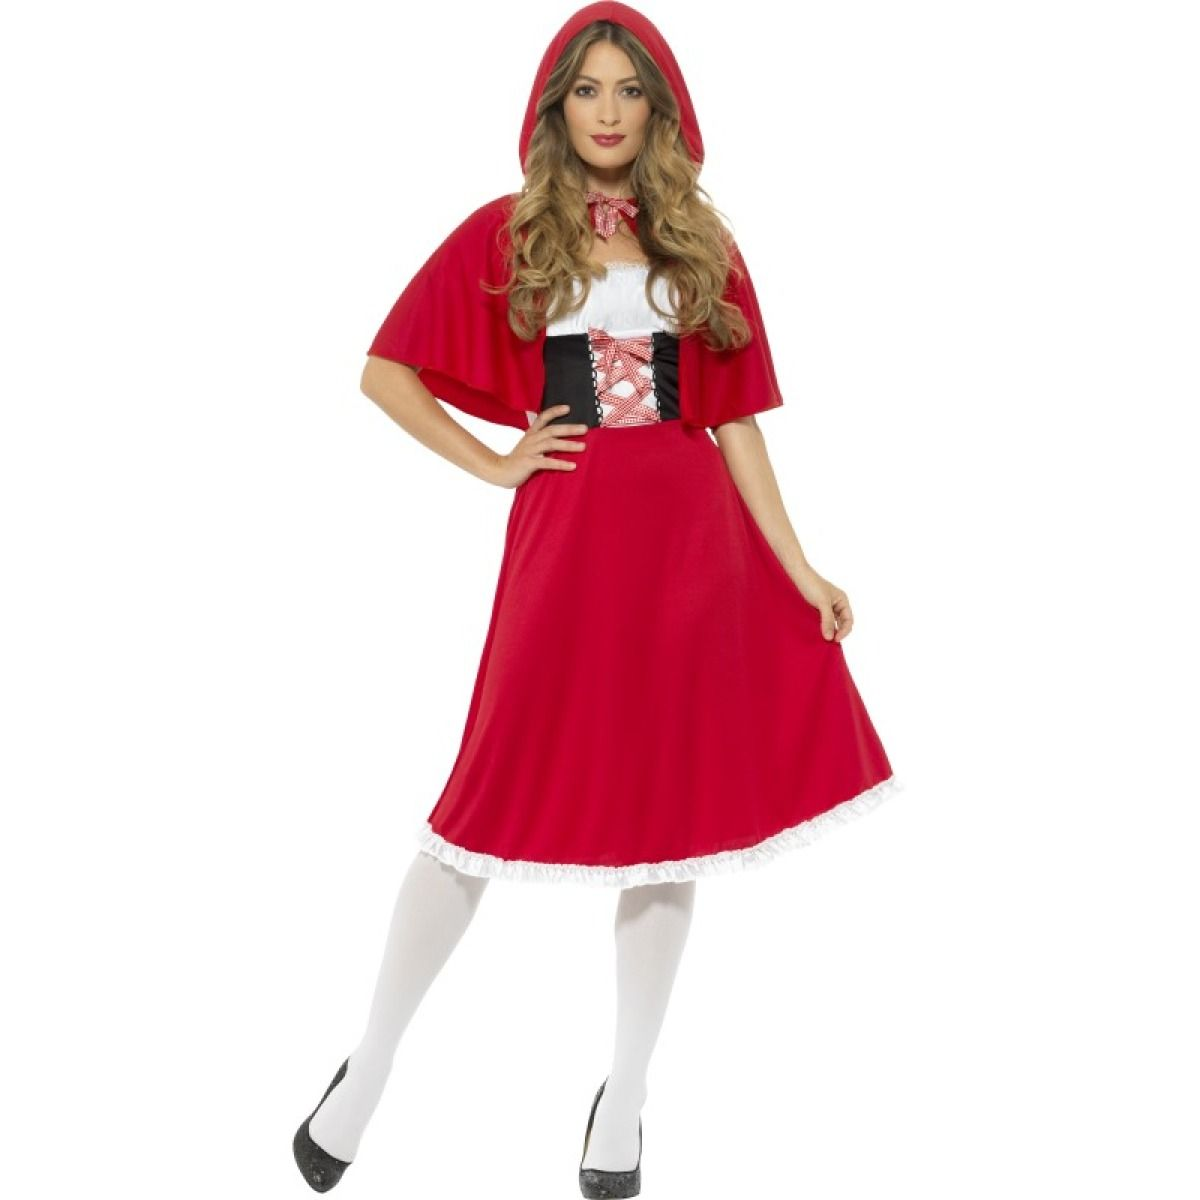 Ladies fairytale red riding hood fancy dress costume 44686 purim transform yourself into red riding hood with this gorgeous classic fairytale red riding hood costume which includes longer length dress and cape buy here solutioingenieria Image collections